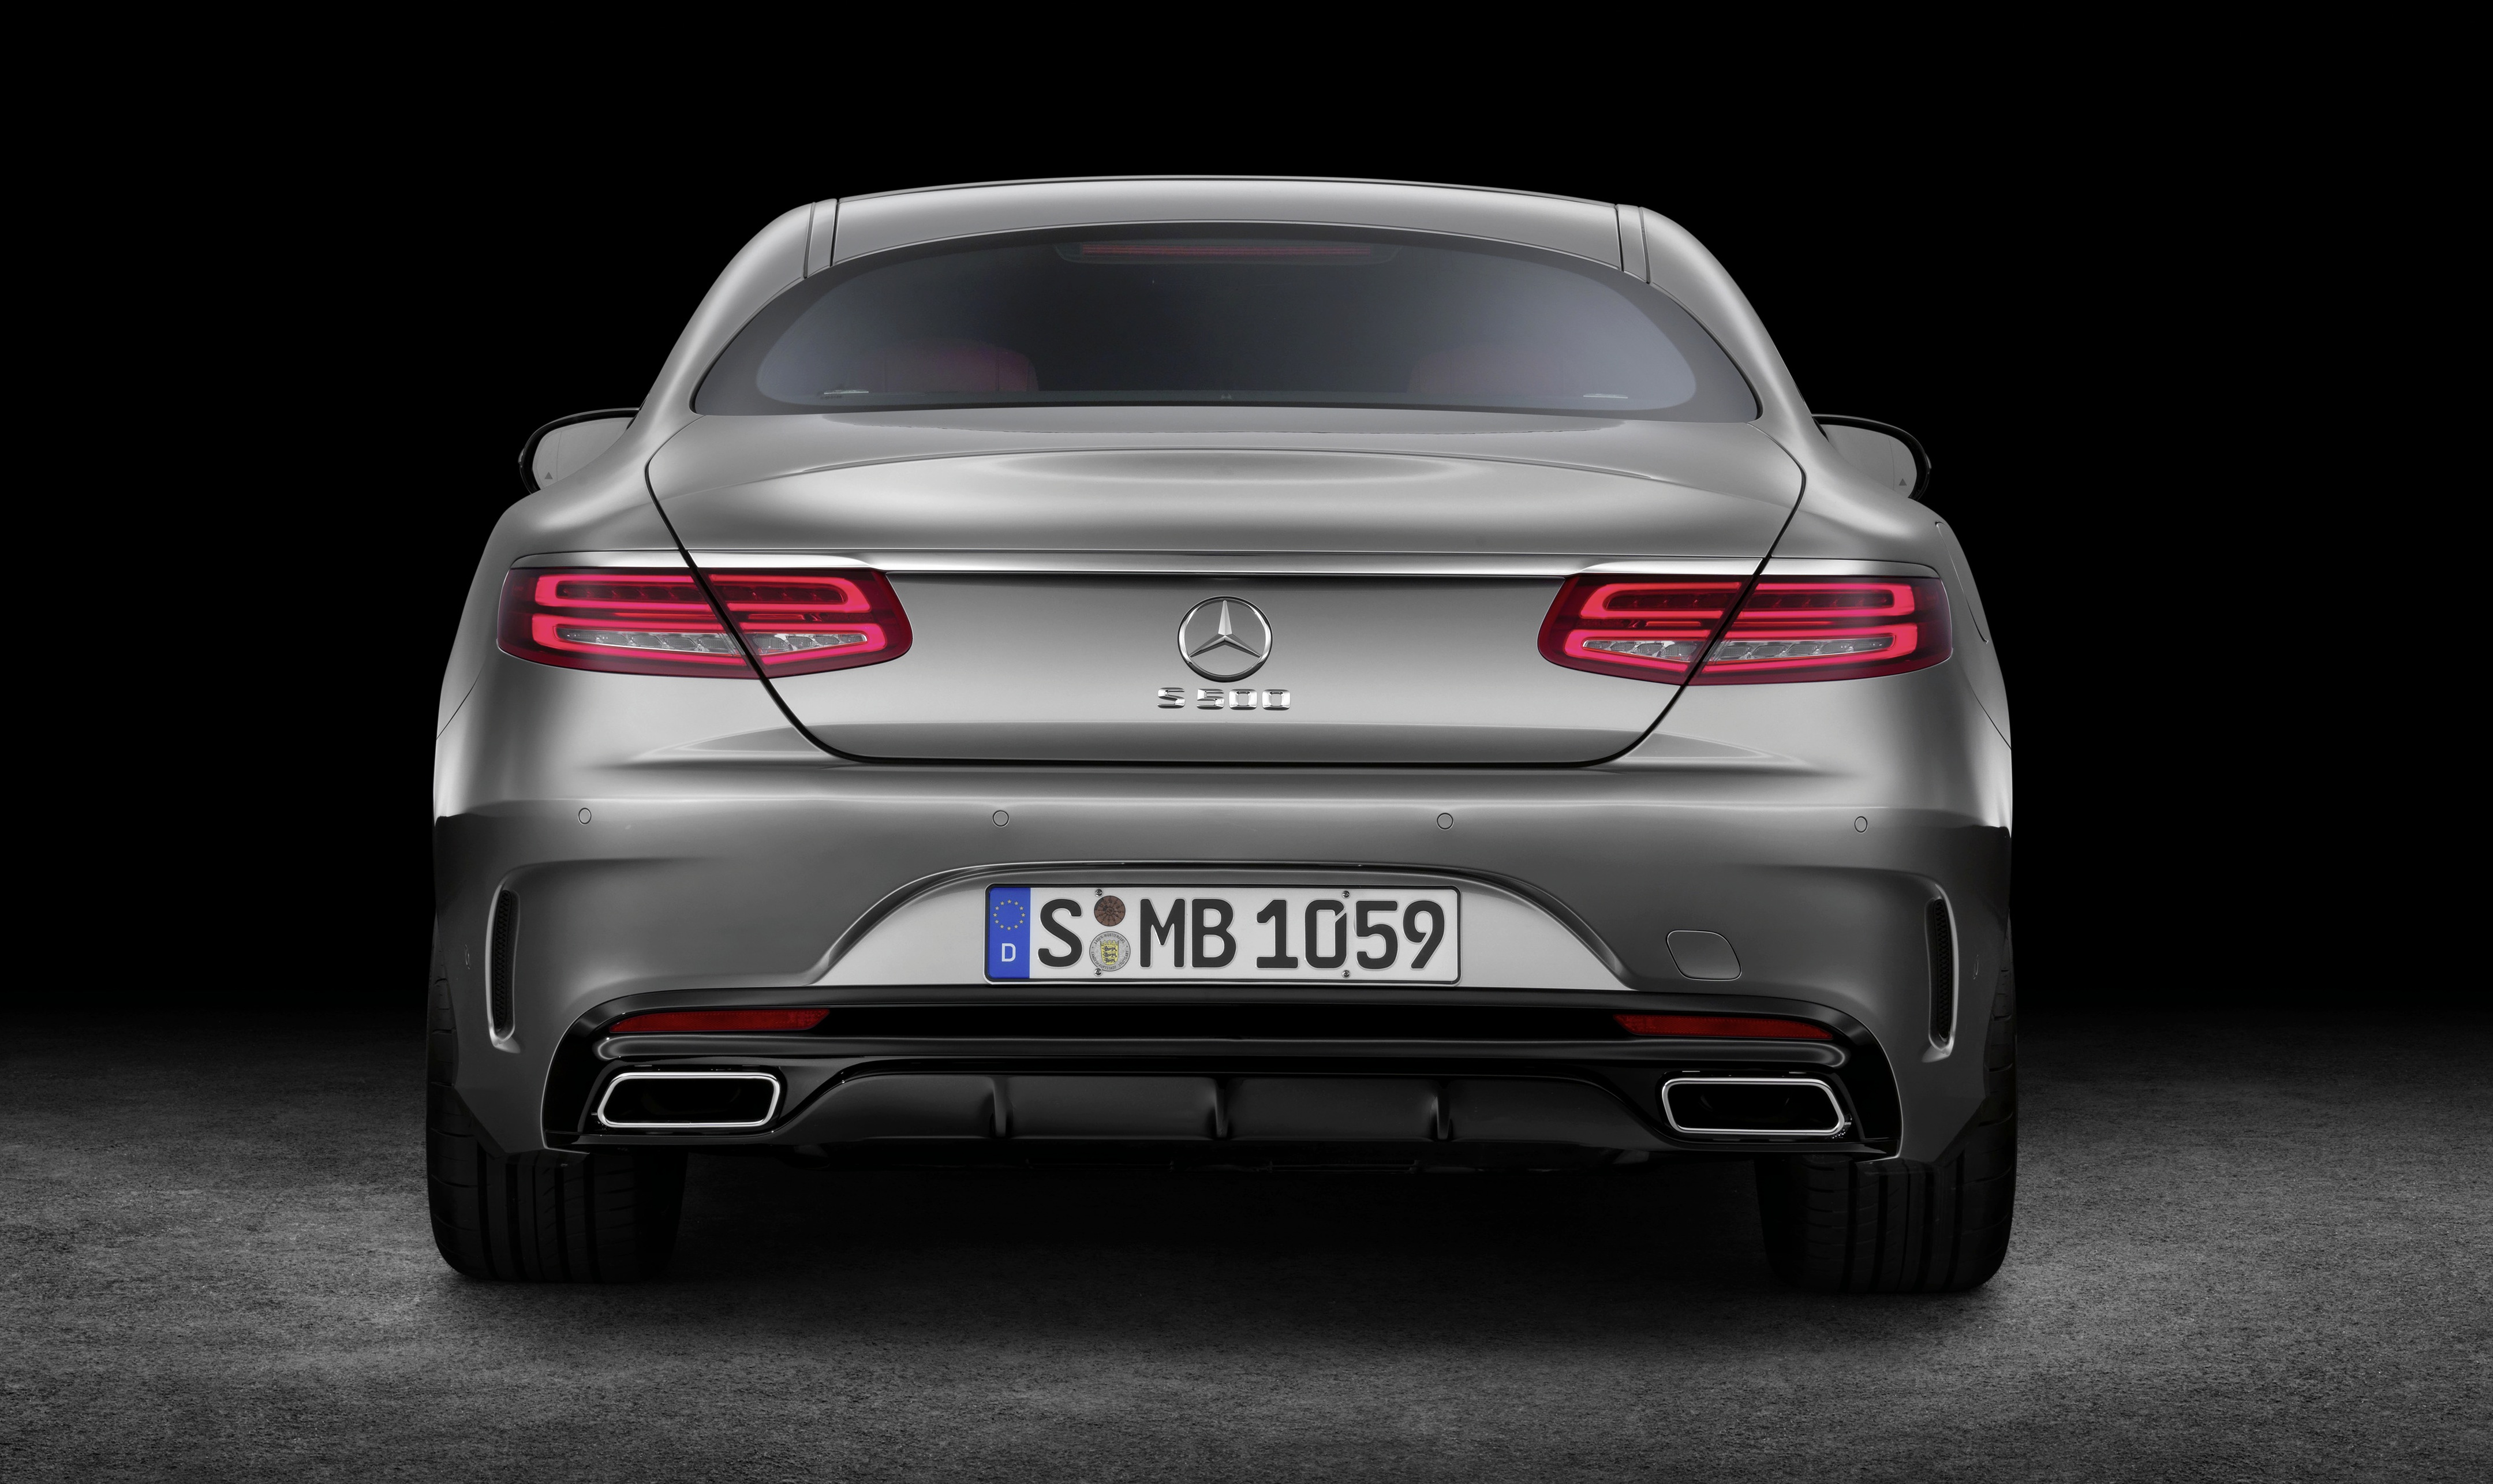 Mercedes Benz S Class Coupe Crystal Clear Details Paul